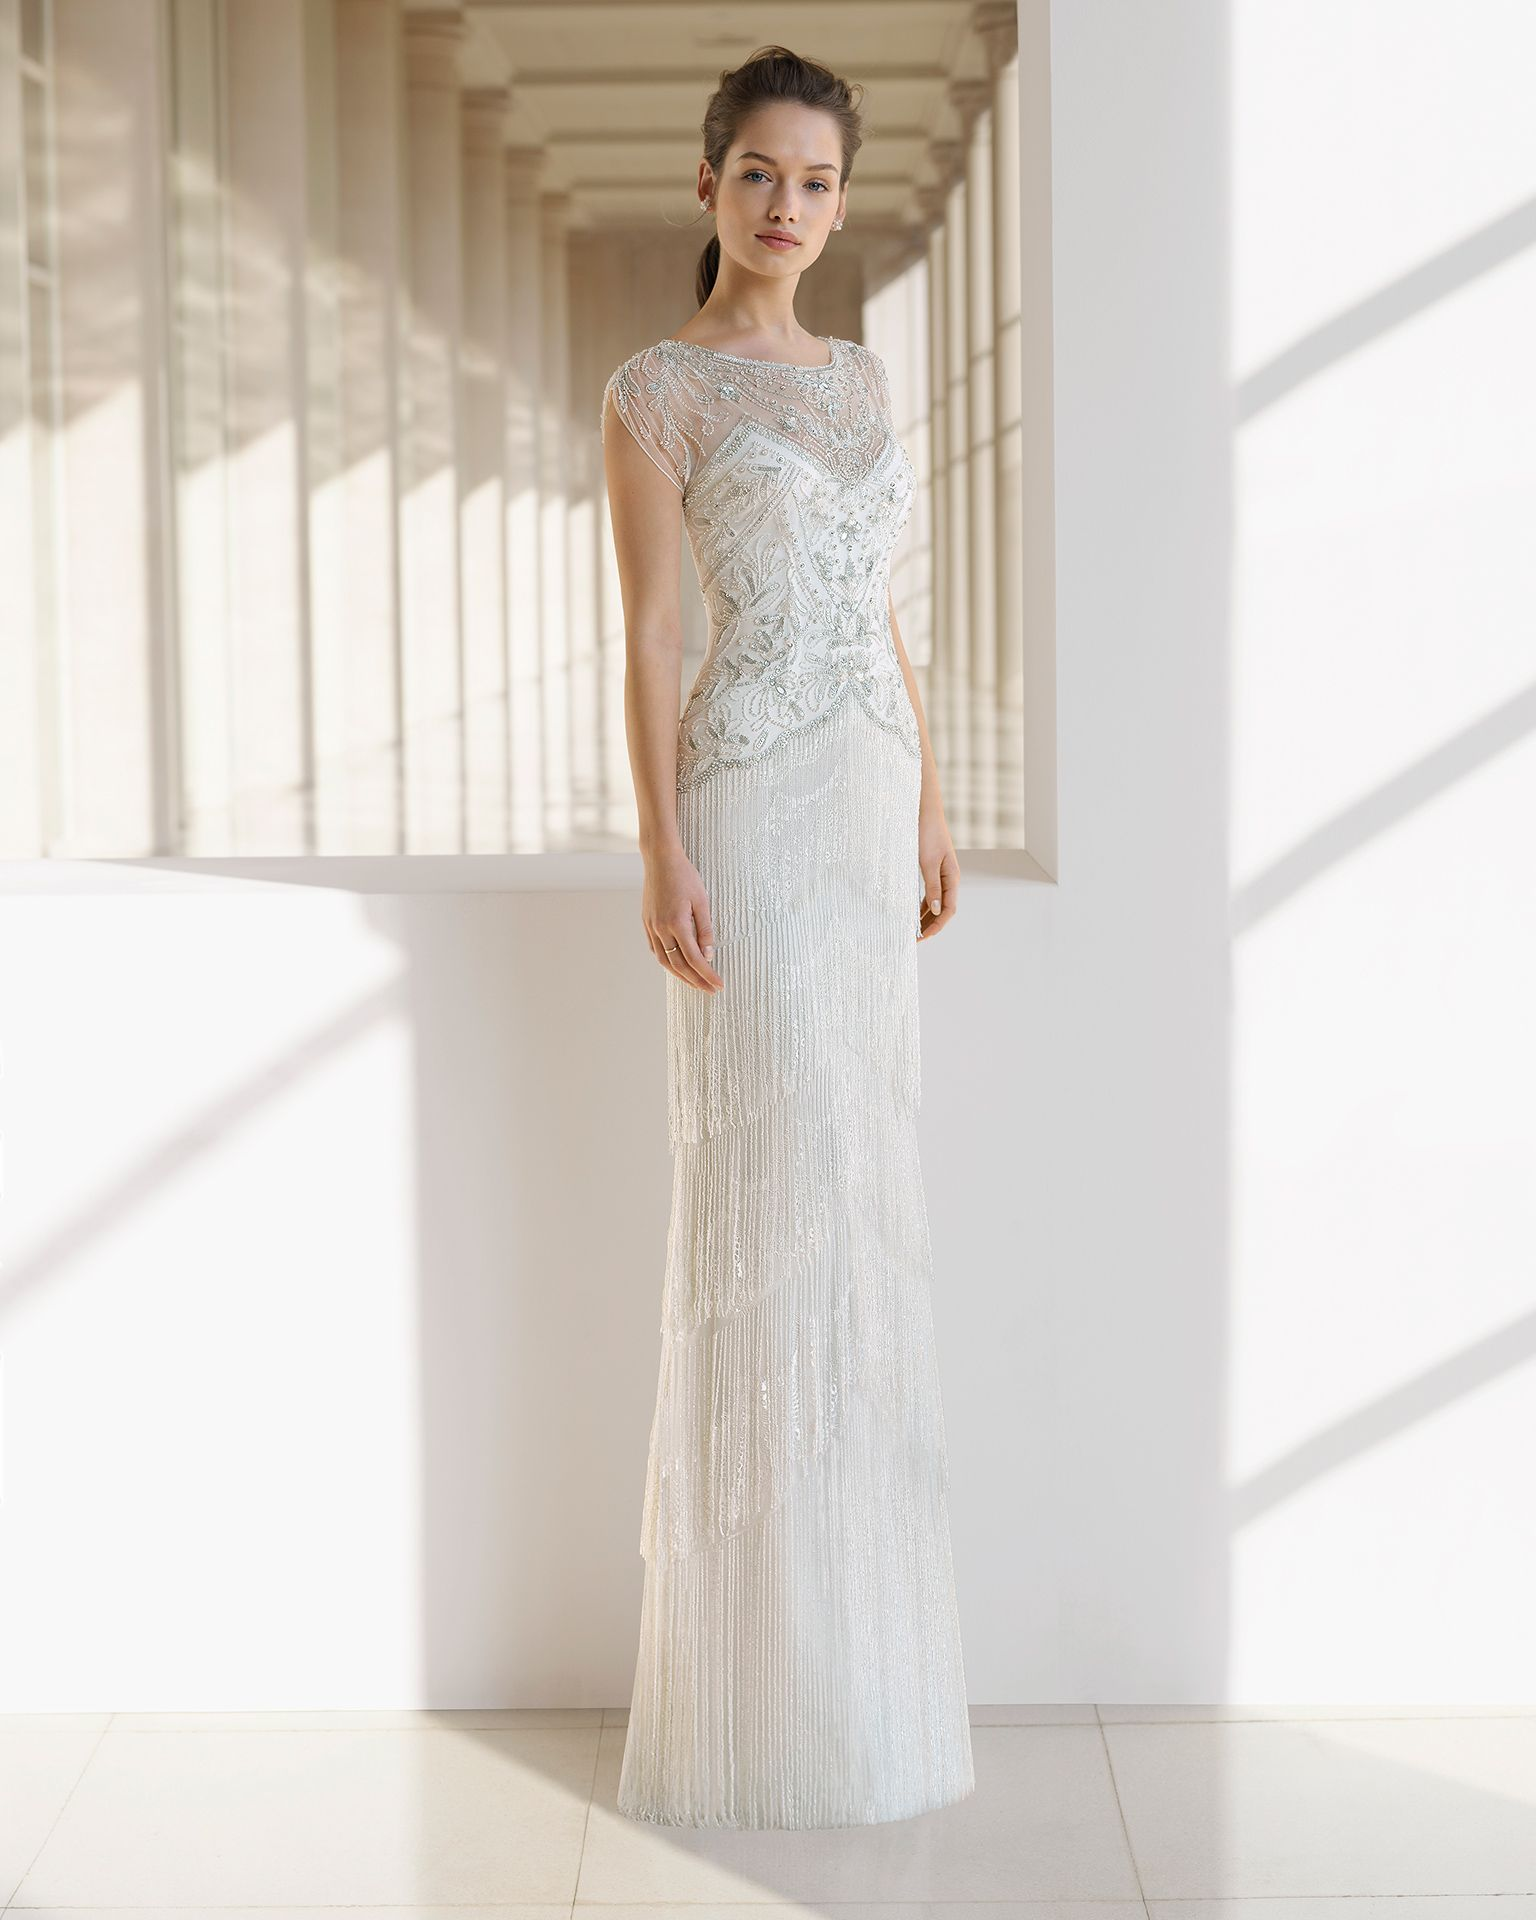 d00389fc7bf Sheath-style wedding dress with beading and fringe. Illusion neckline with  beaded embroidery and short sleeves. Available in natural silver and  natural.